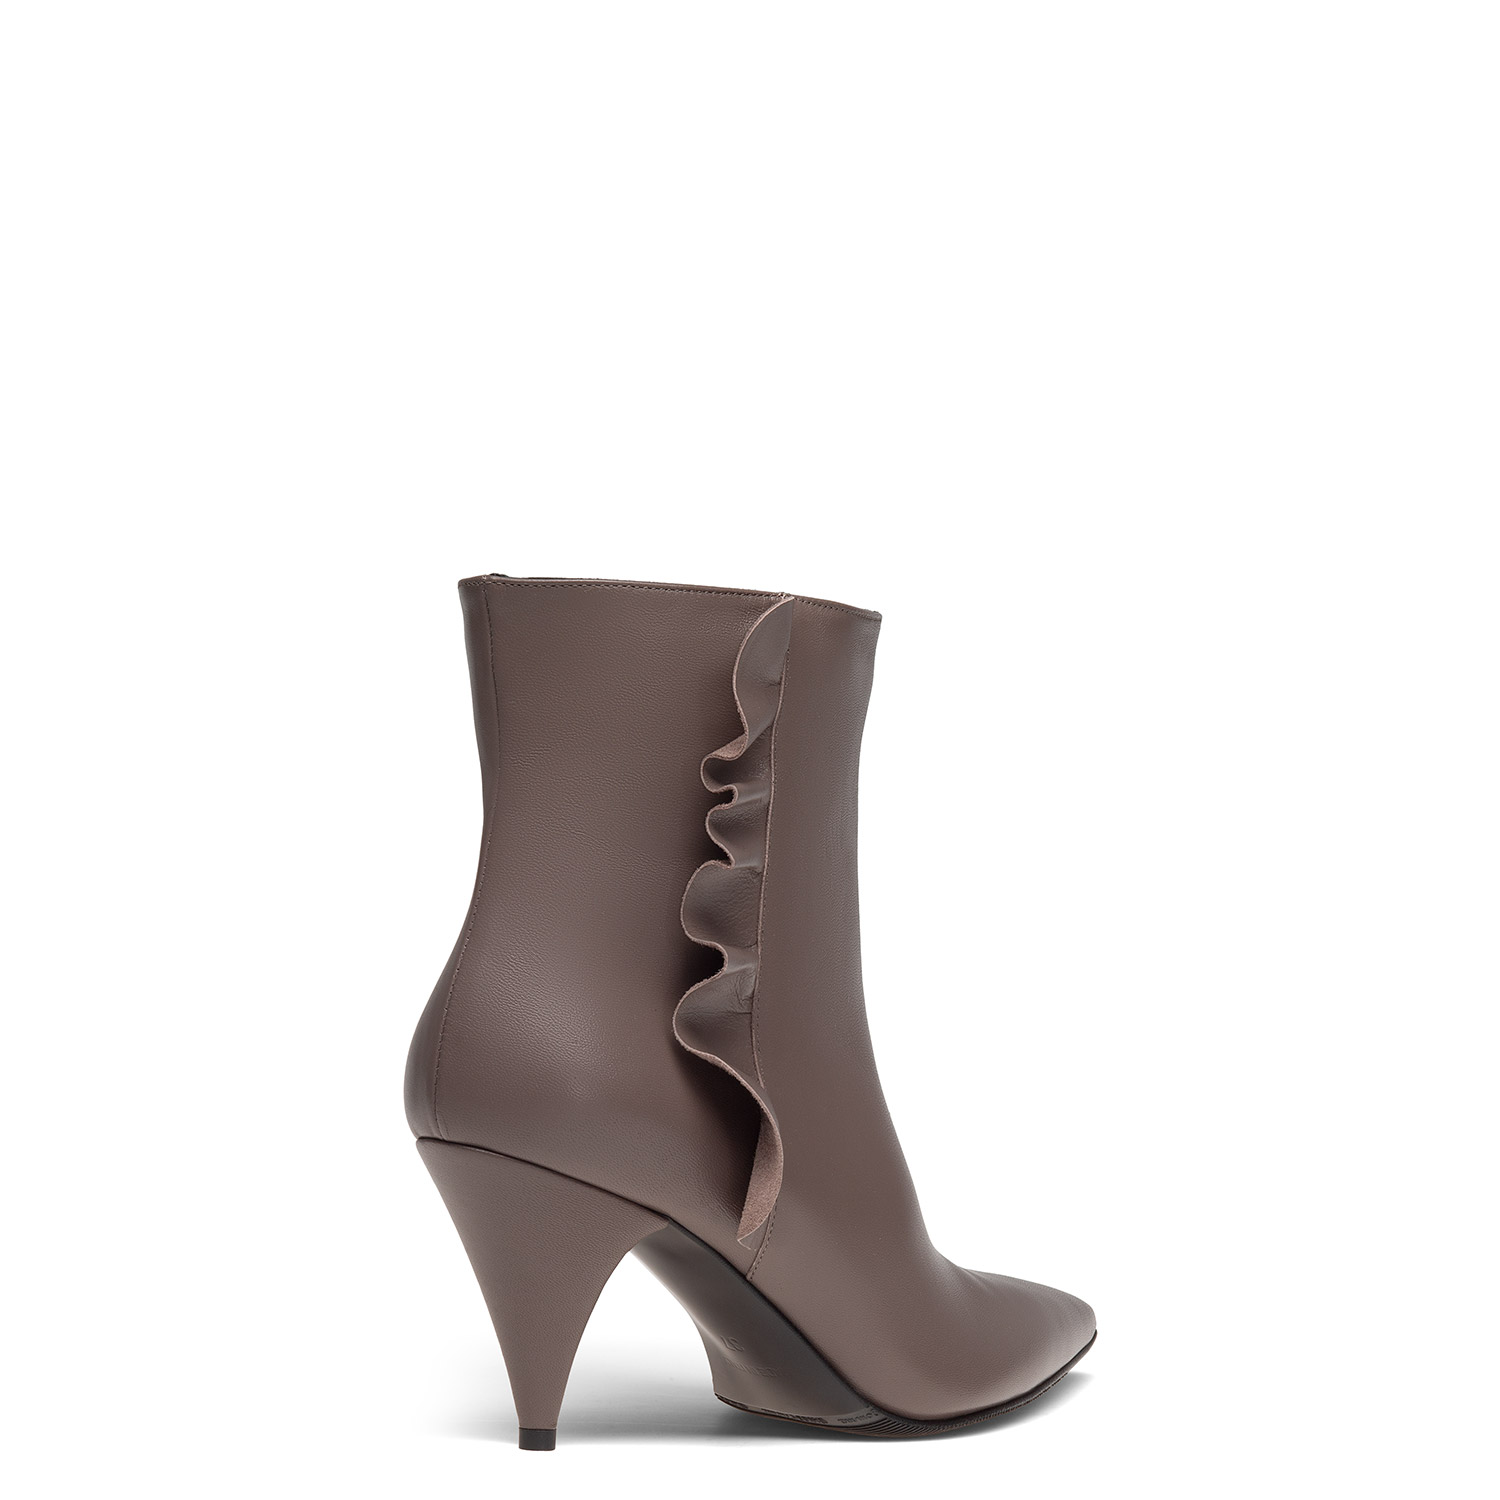 Women's ankle boots PAZOLINI CL-NEO1-10